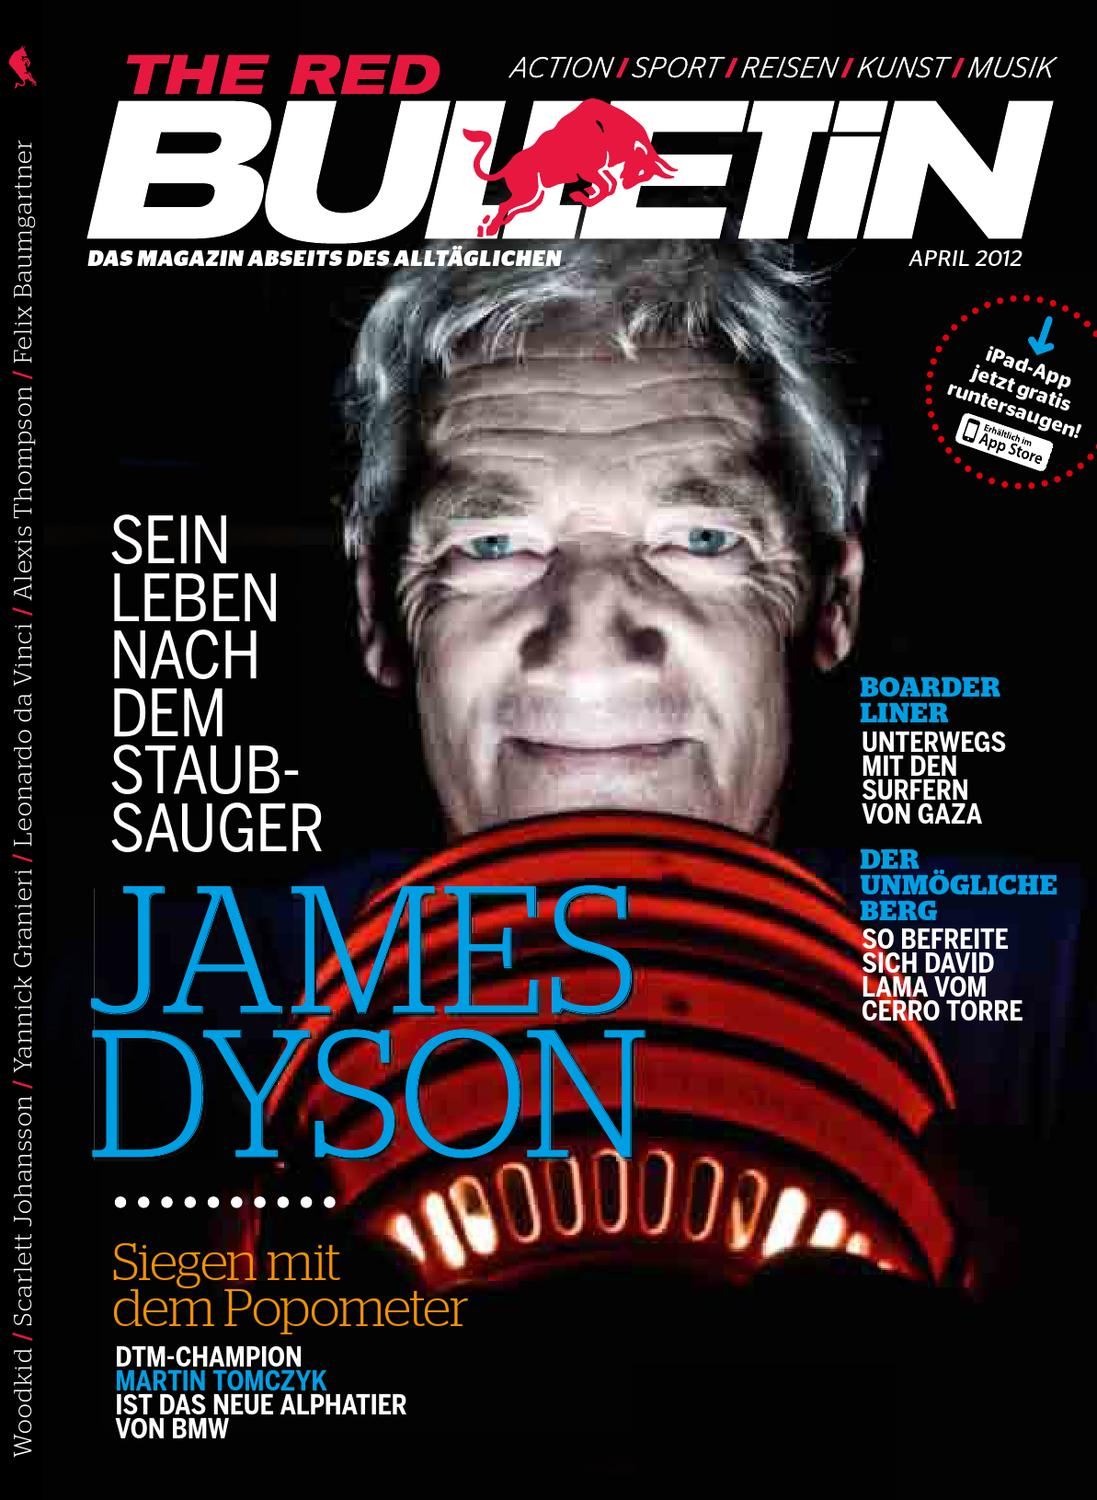 The Red Bulletin_1204_DE by Red Bull Media House - issuu